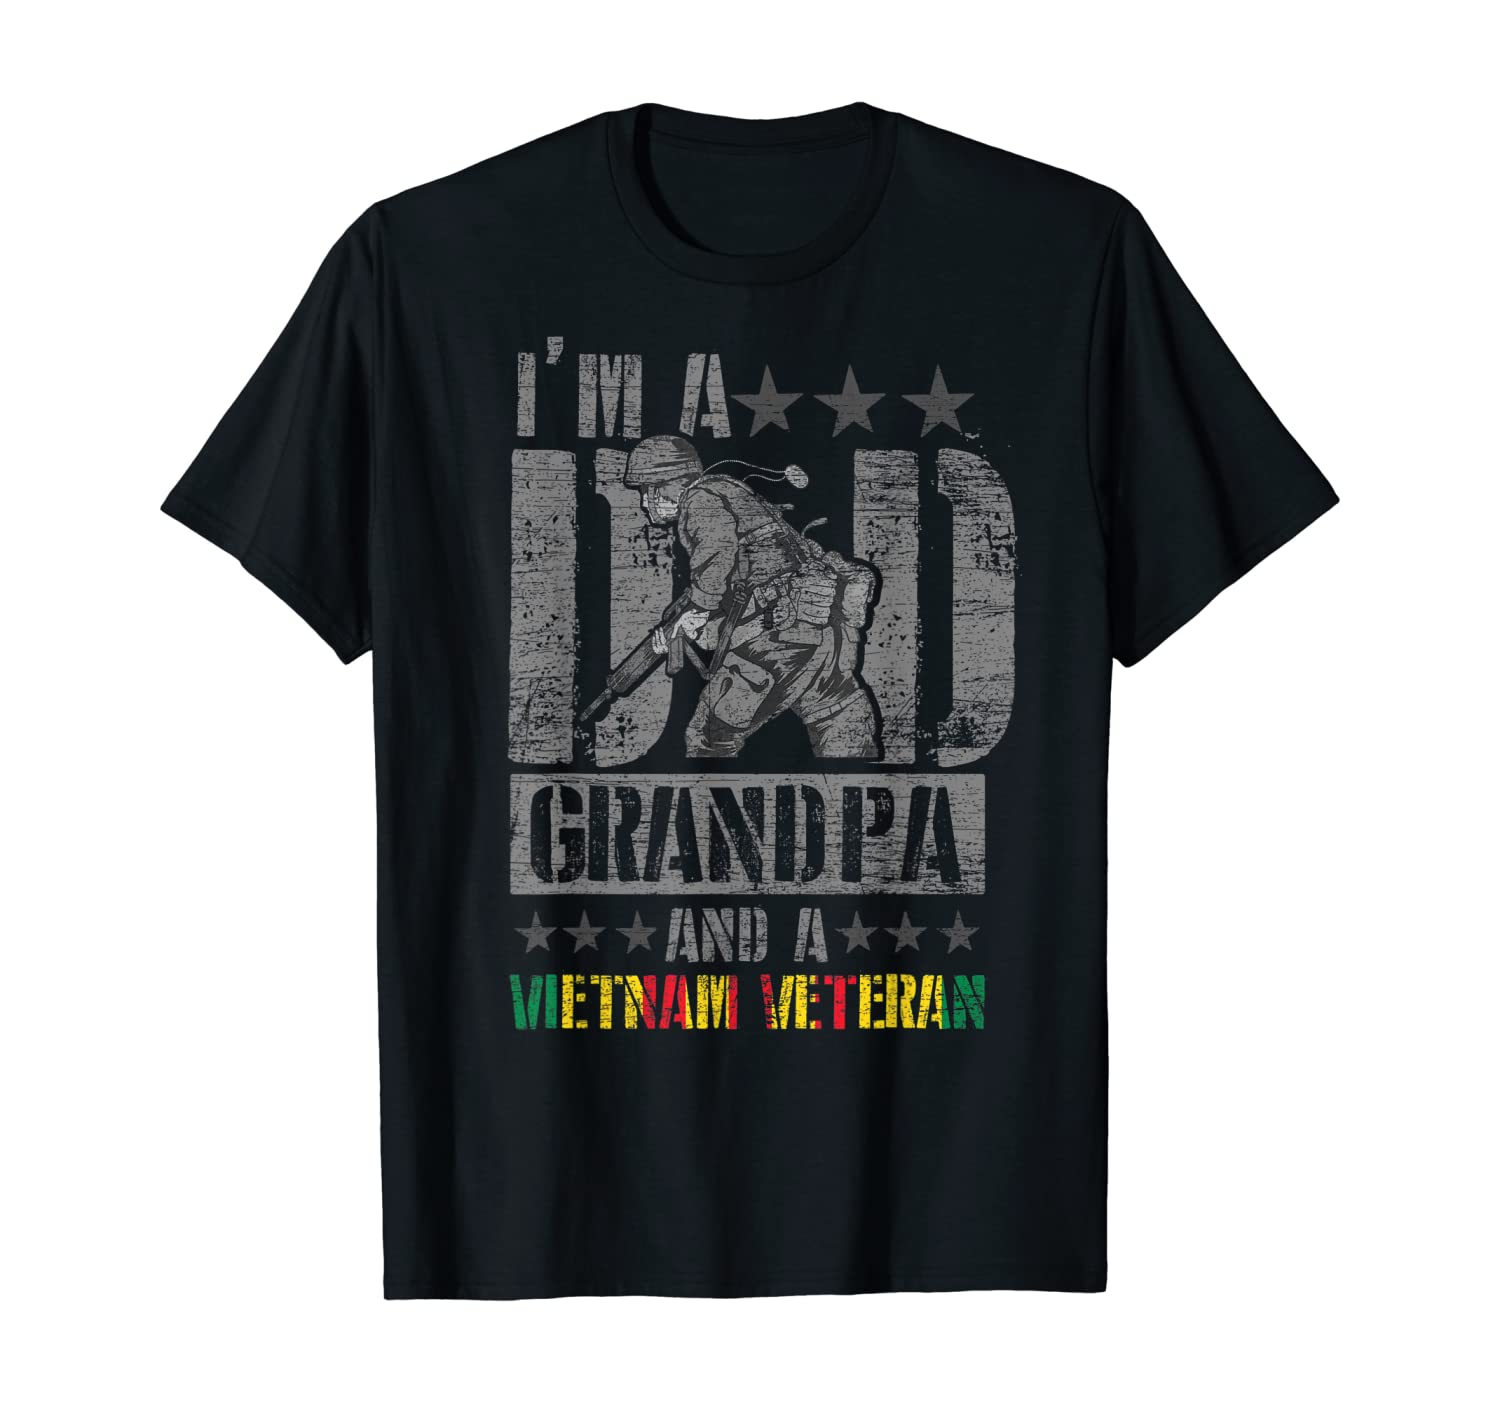 Im A Dad A Grandpa And A Vietnam Veteran T-Shirt